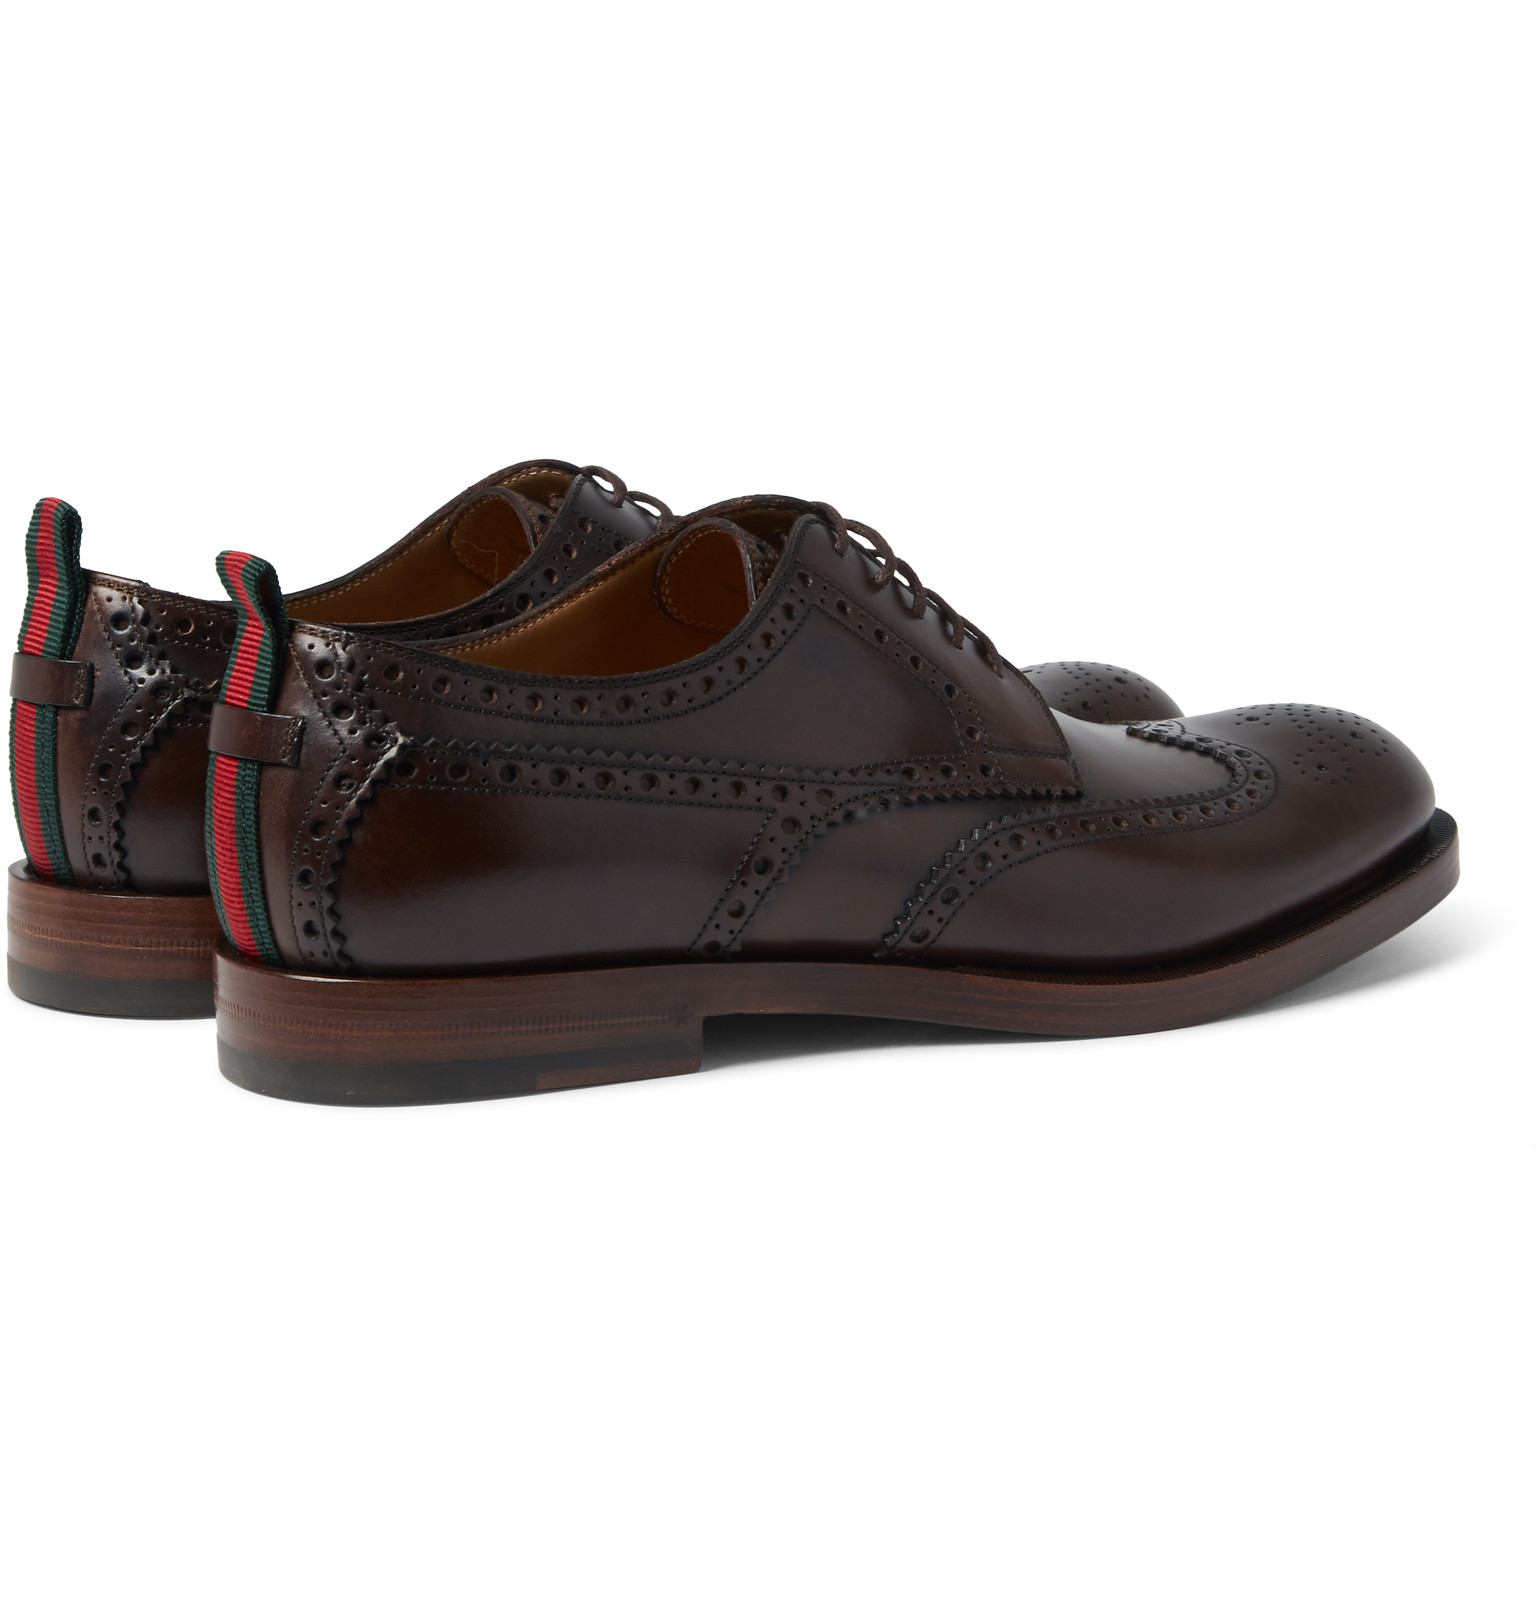 Mens Shoes With Red Stripe On Heel